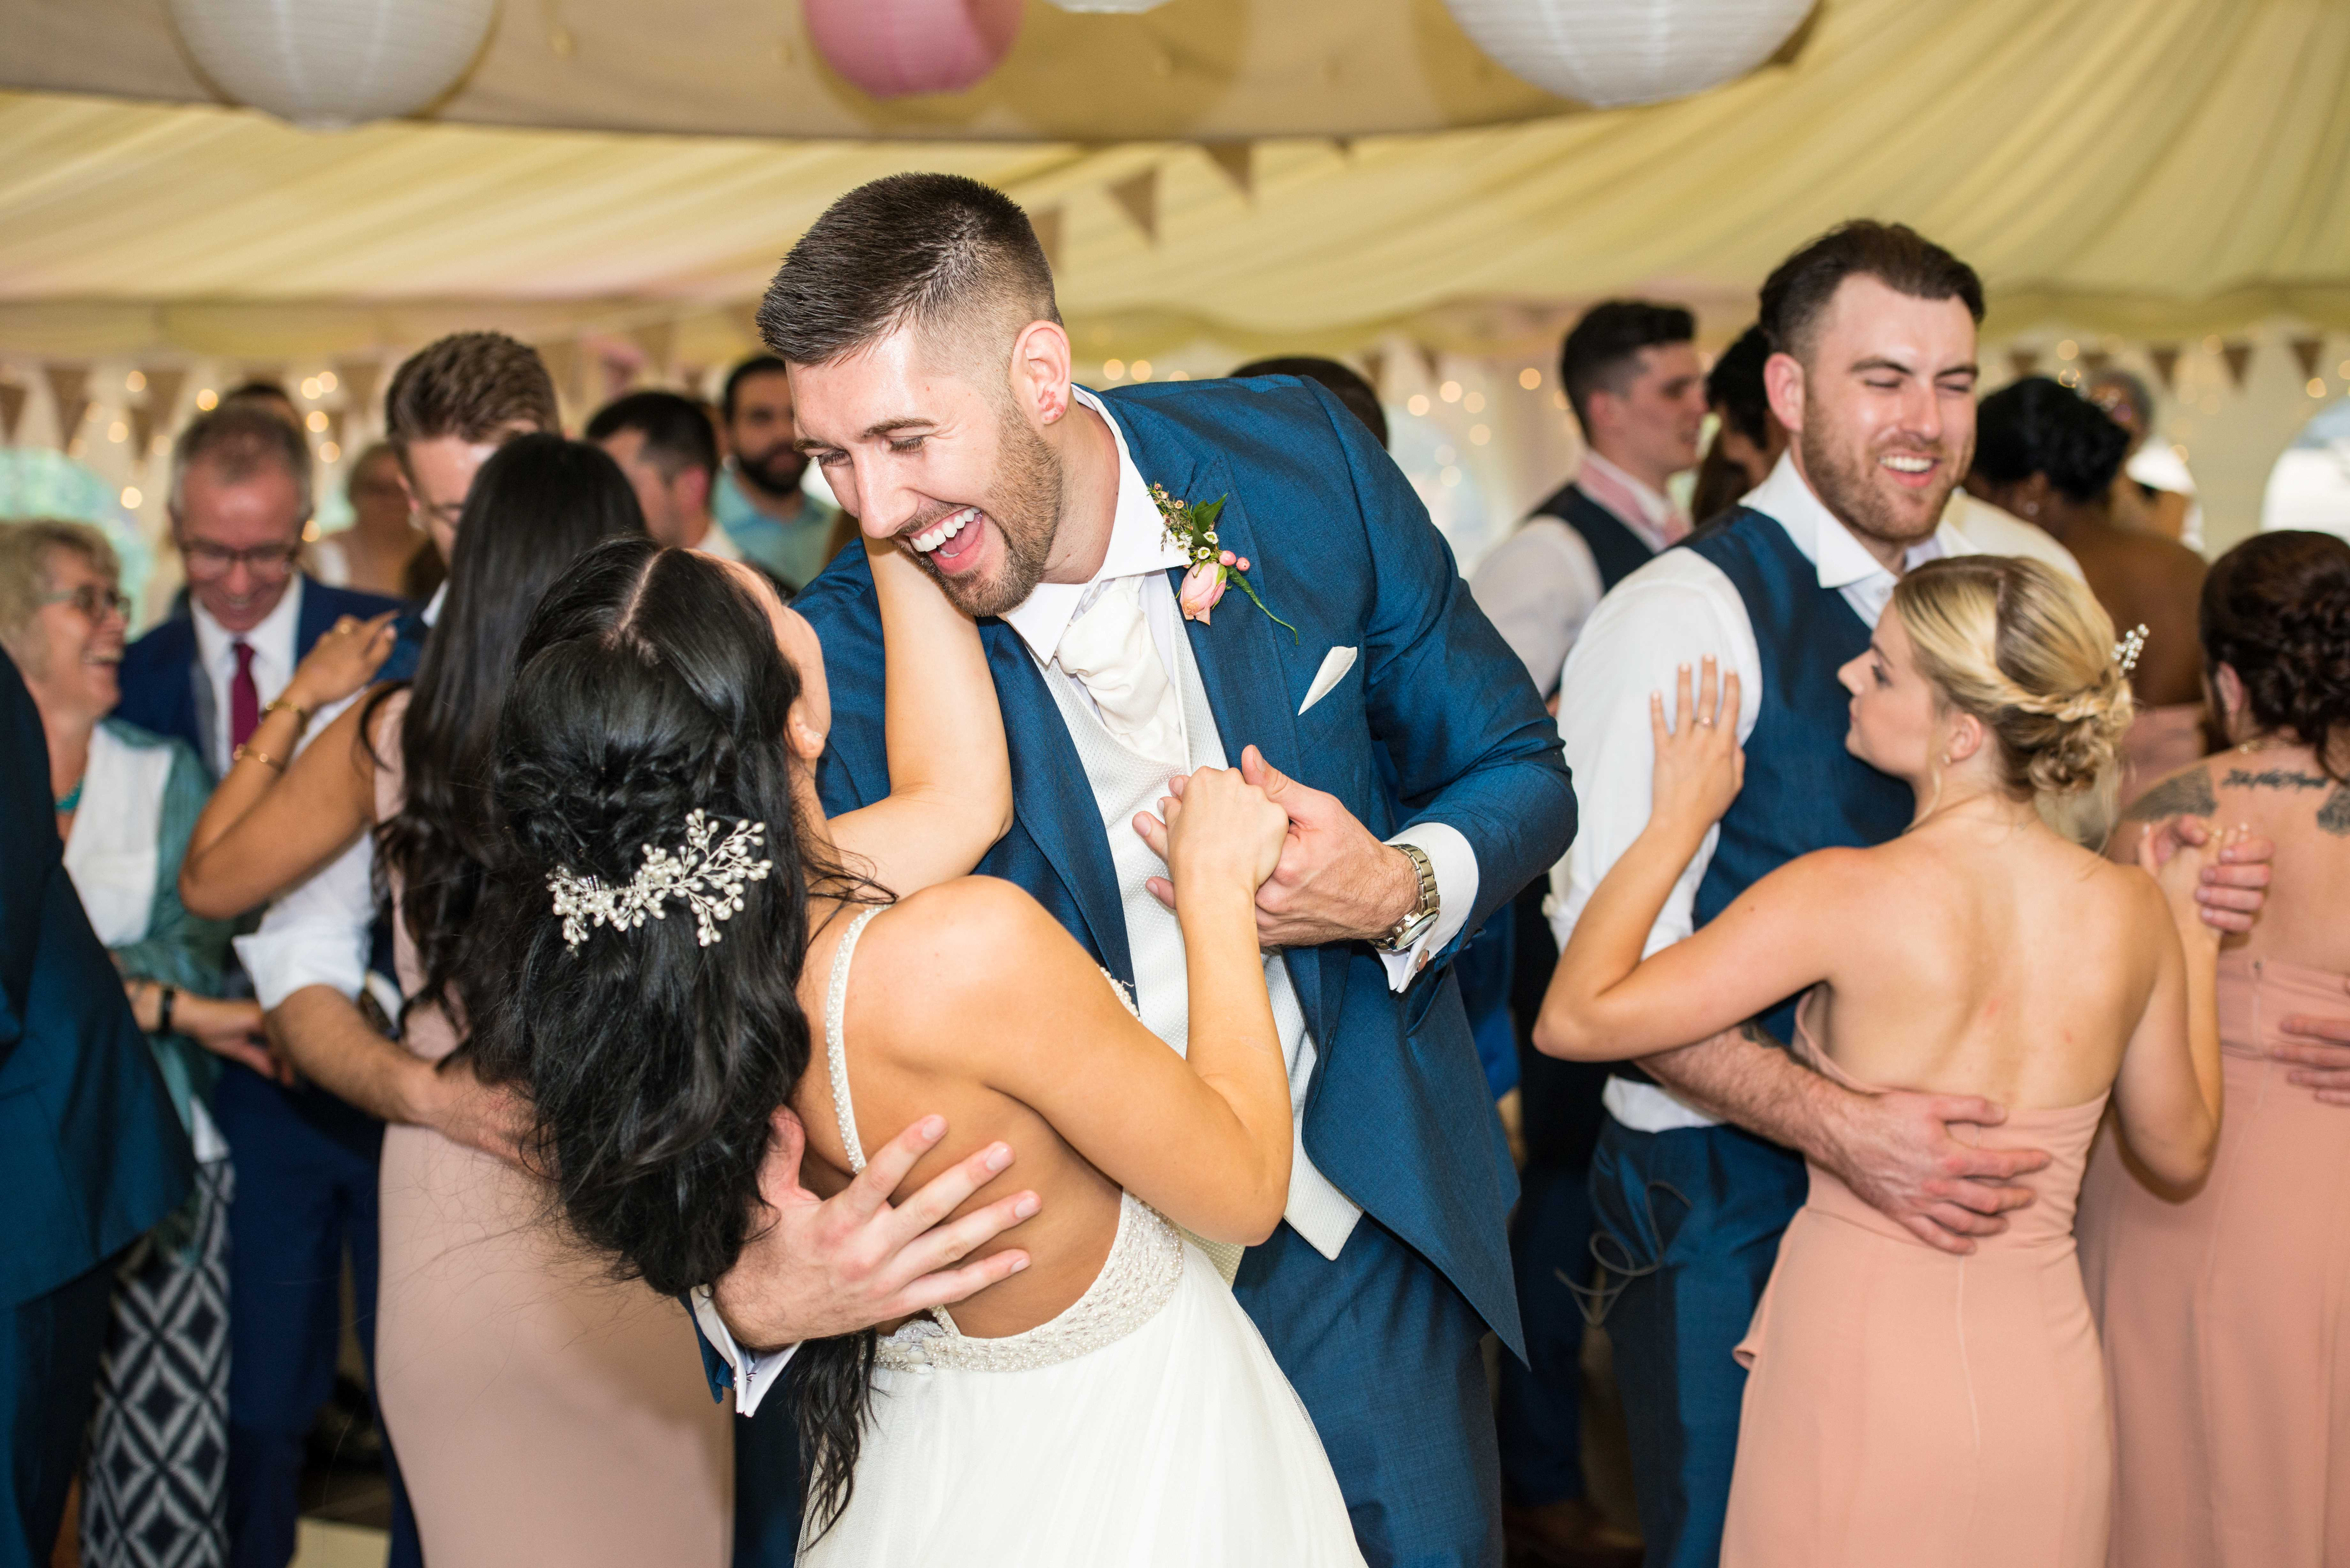 Everyone joins in dancing with the bride and groom as they complete their first dance as husband and wife.